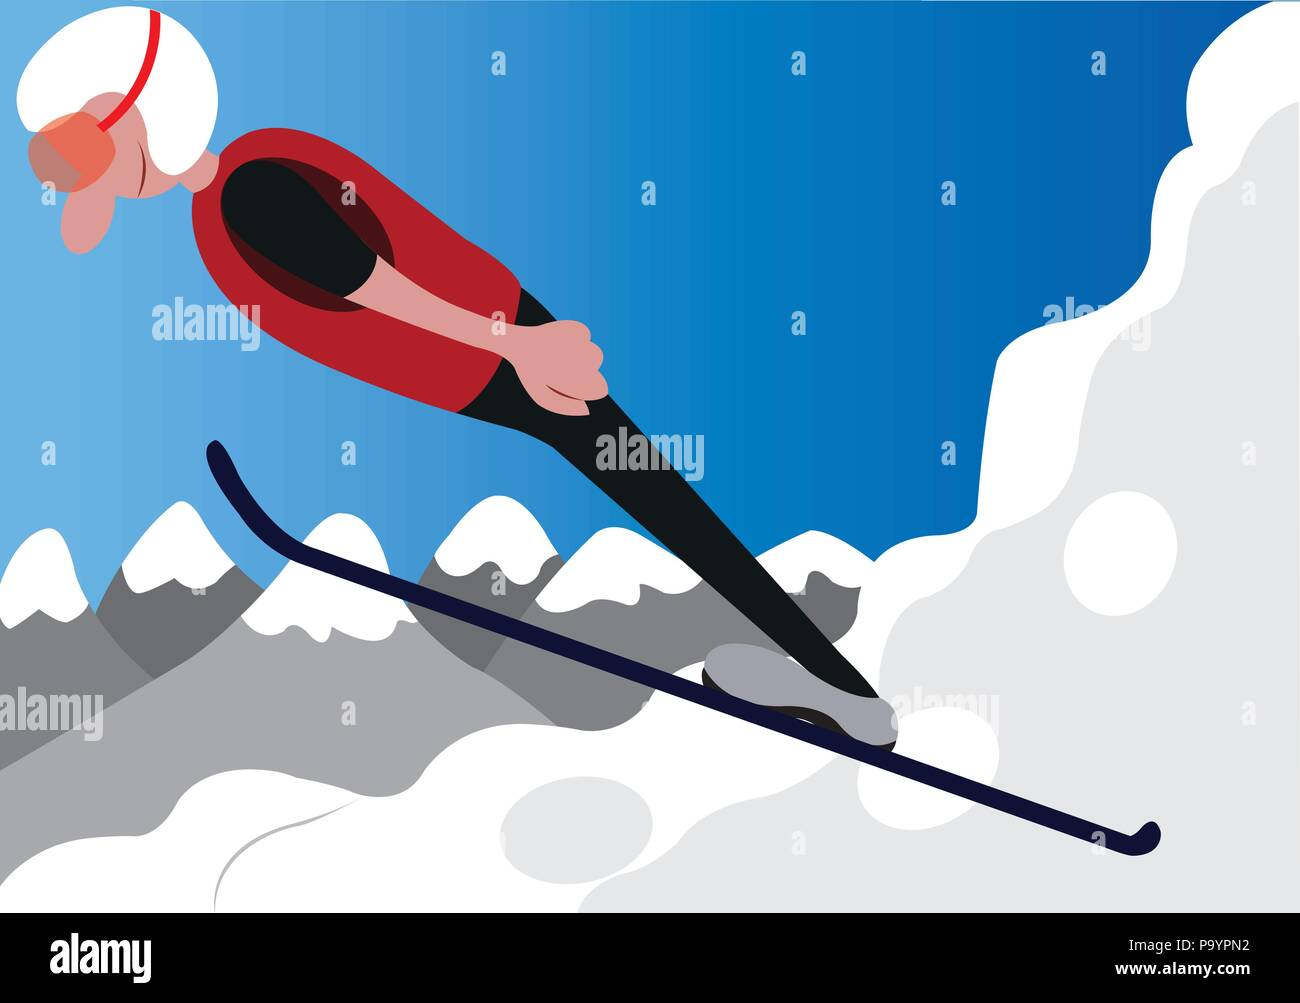 a ski jumper does a stunt on a ski resort - Stock Vector